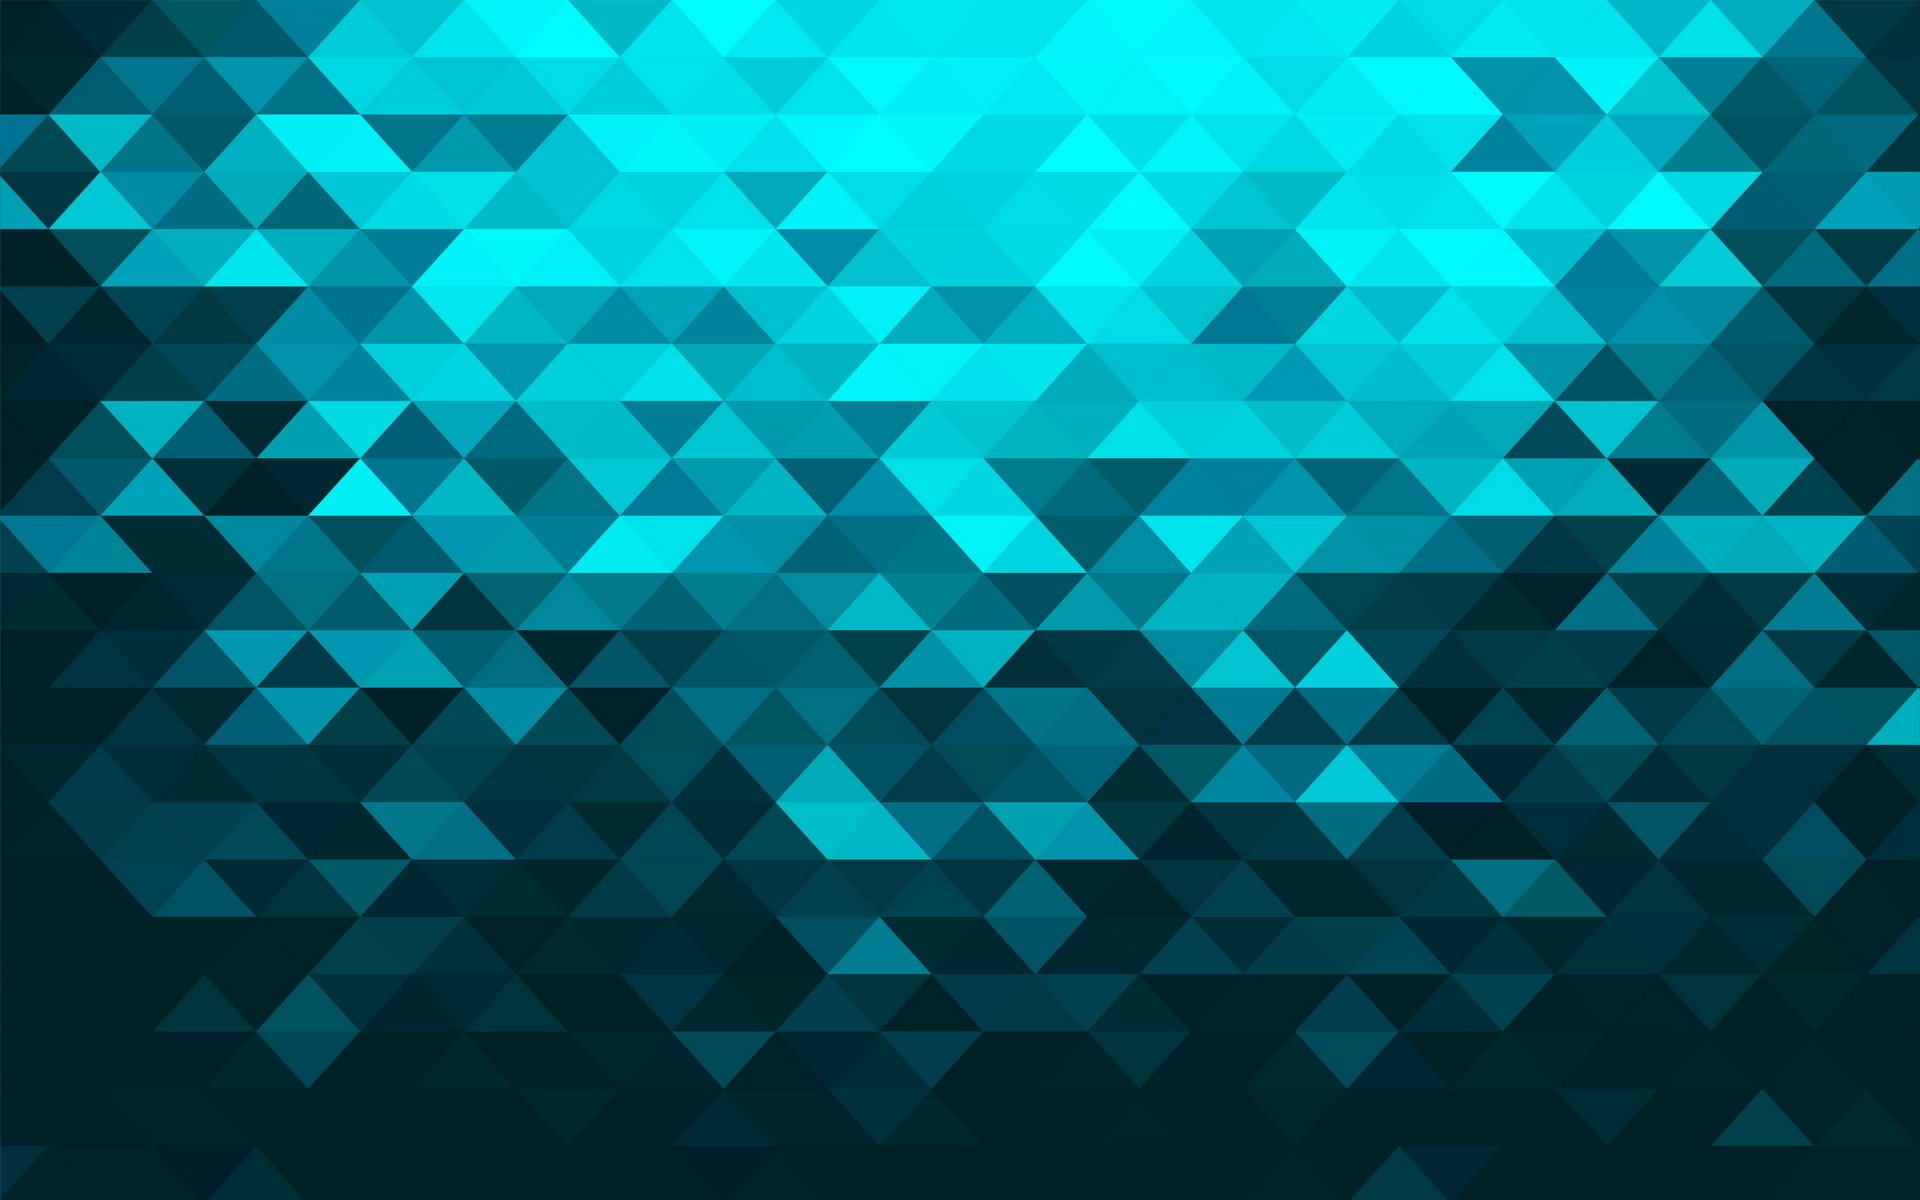 Pattern - Turquoise  Shapes Geometry Wallpaper